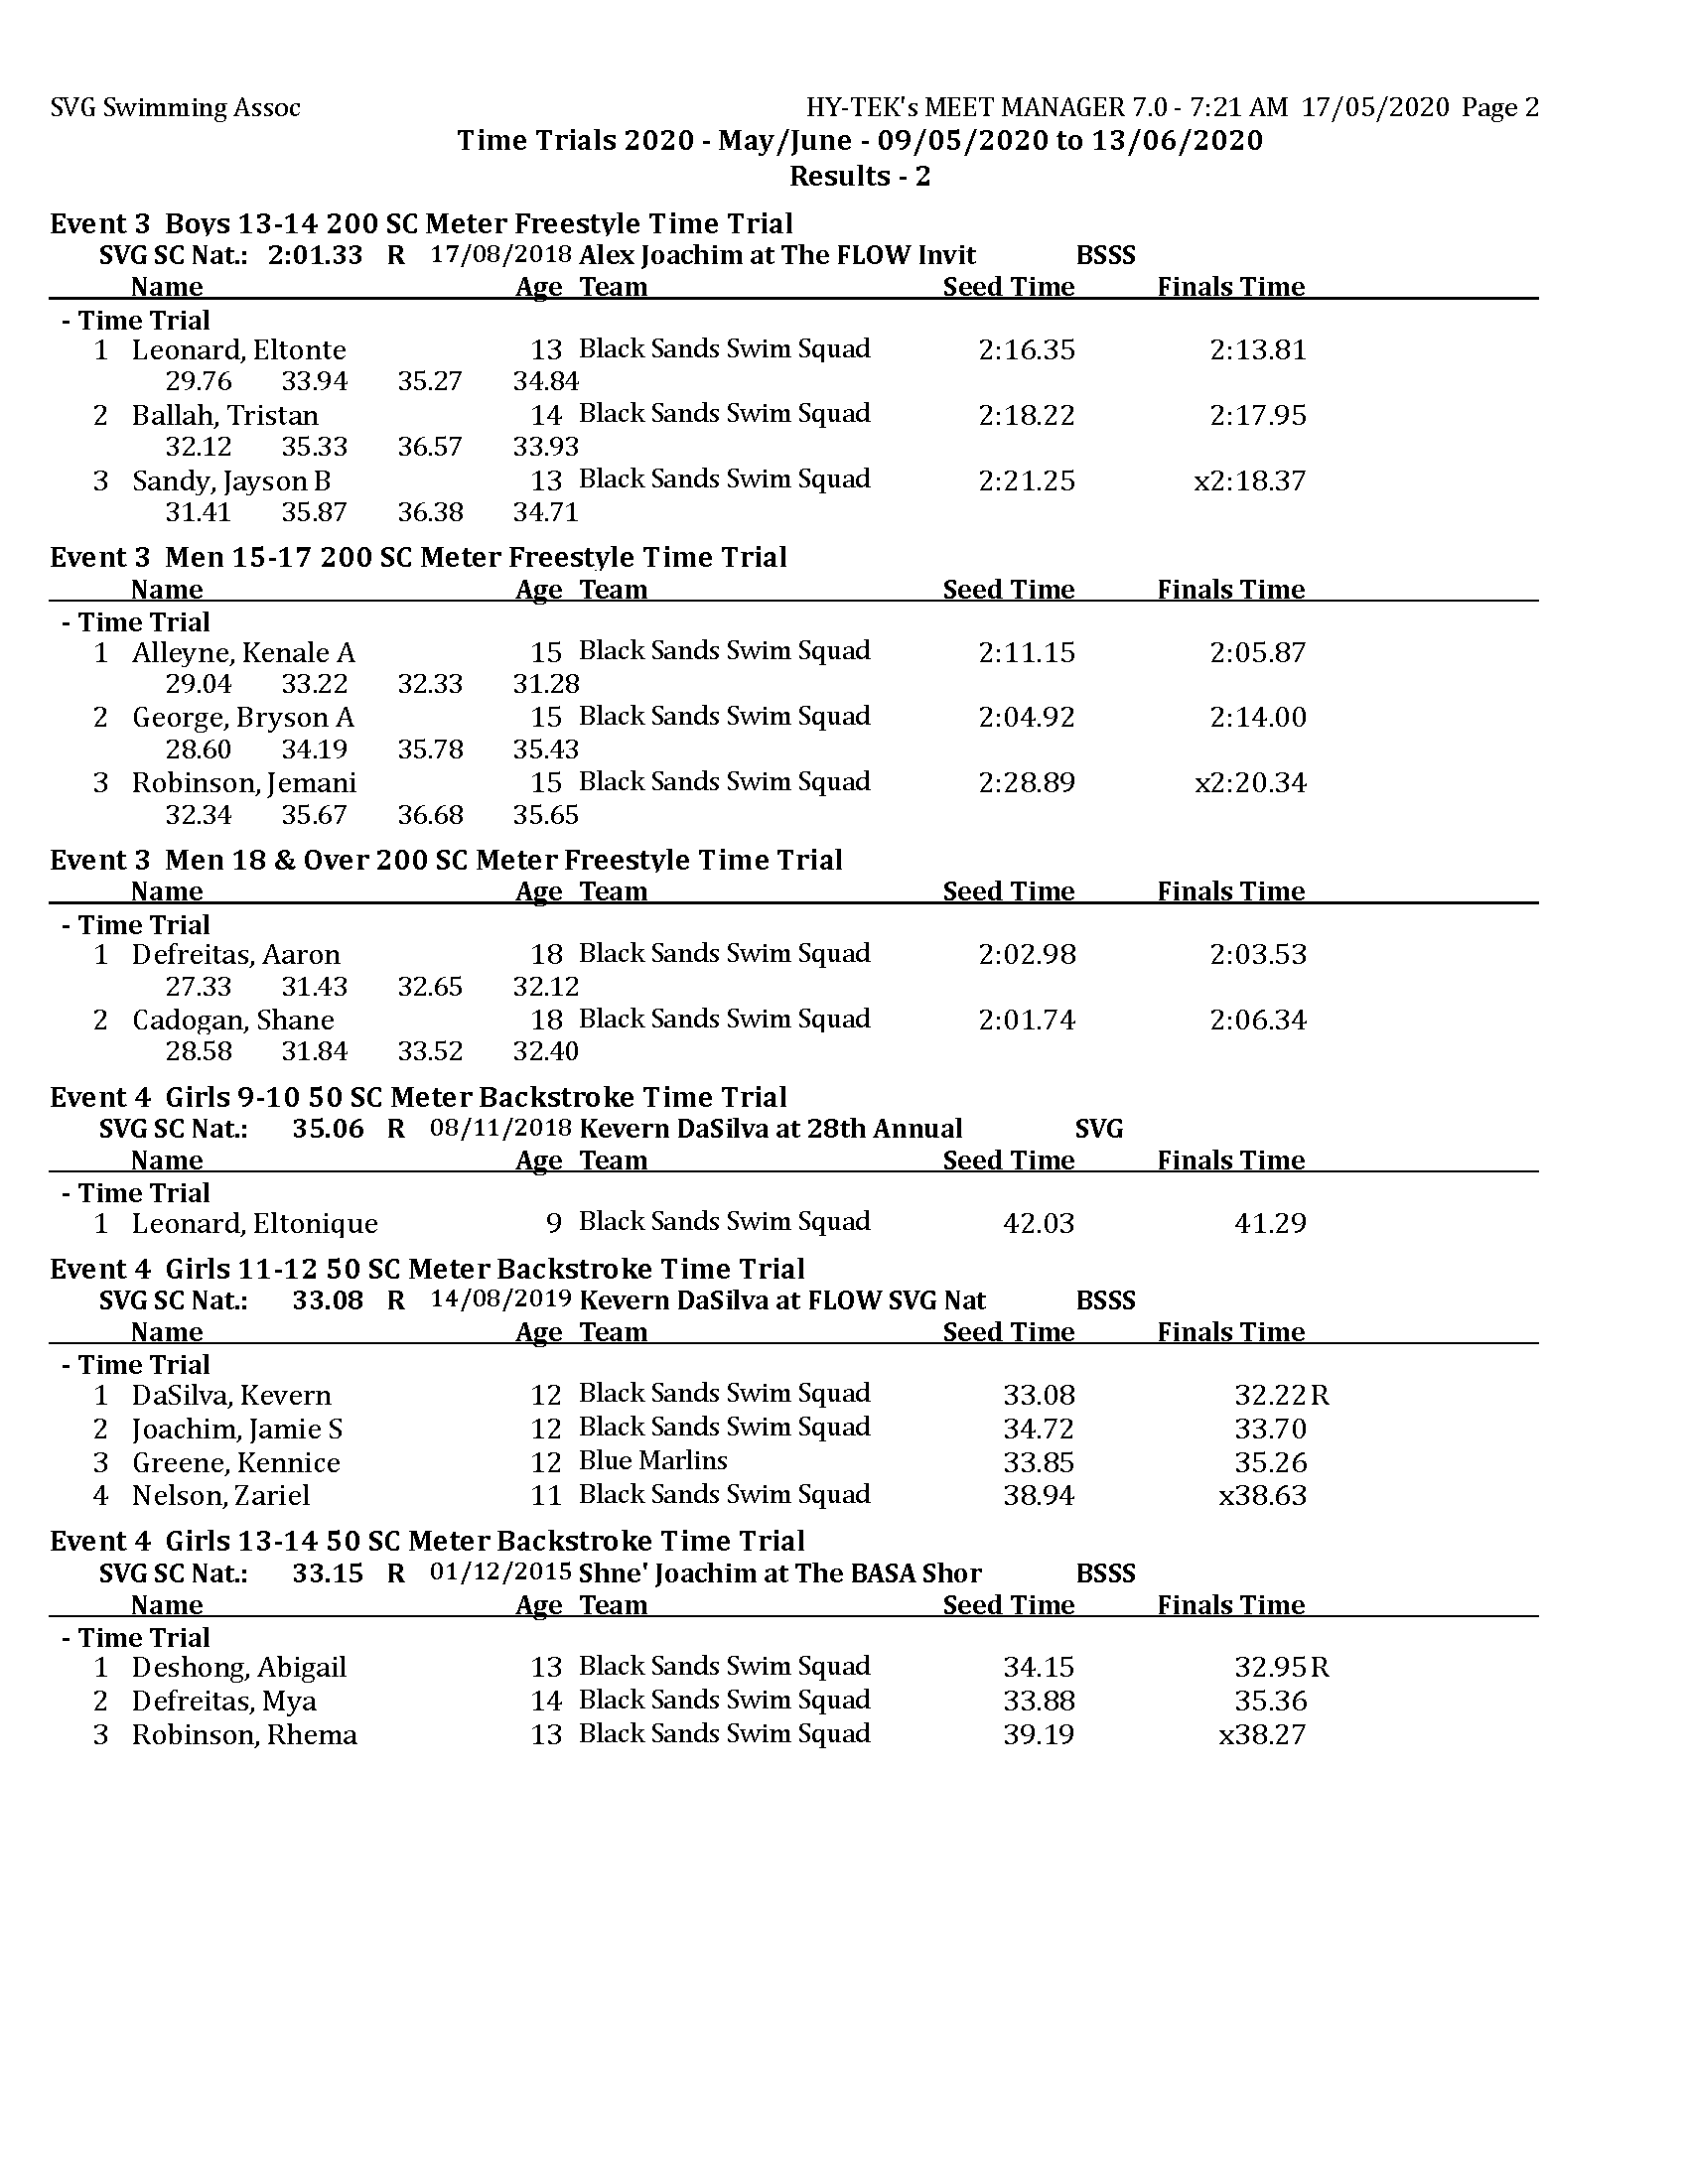 TT 2020 - May - Results day 2 MM_Page_2